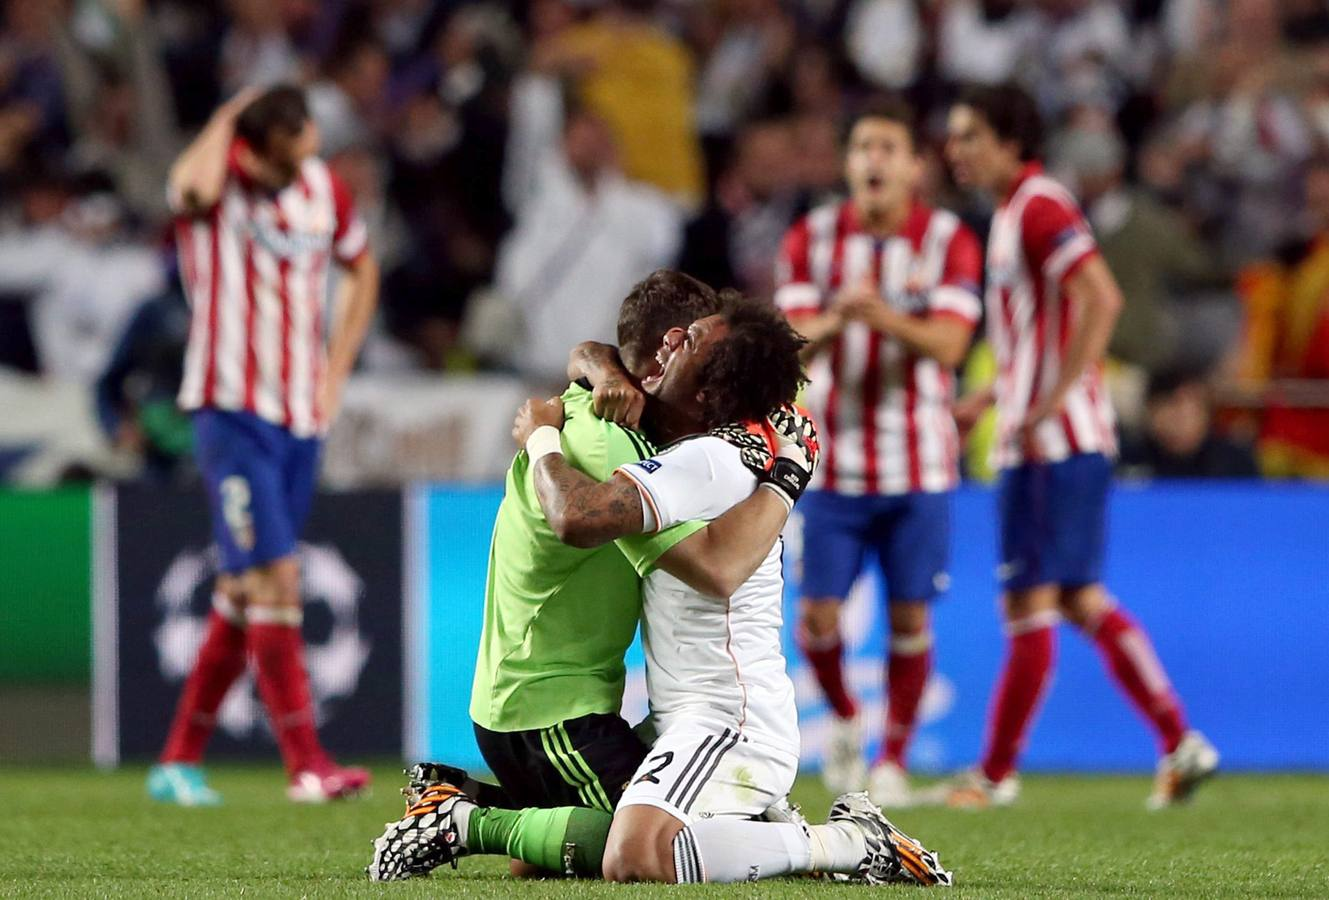 JSG. Lisbon (Portugal), 24/05/2014.- Real Madrid's goalkeeper Iker Casillas (L) and Marcelo Vieira celebrate the 1-1 goal during the UEFA Champions League final between Real Madrid and Atletico Madrid at Luz Stadium in Lisbon, Portugal, 24 May 2014. (Lisboa, Liga de Campeones) EFE/EPA/MARIO CRUZ